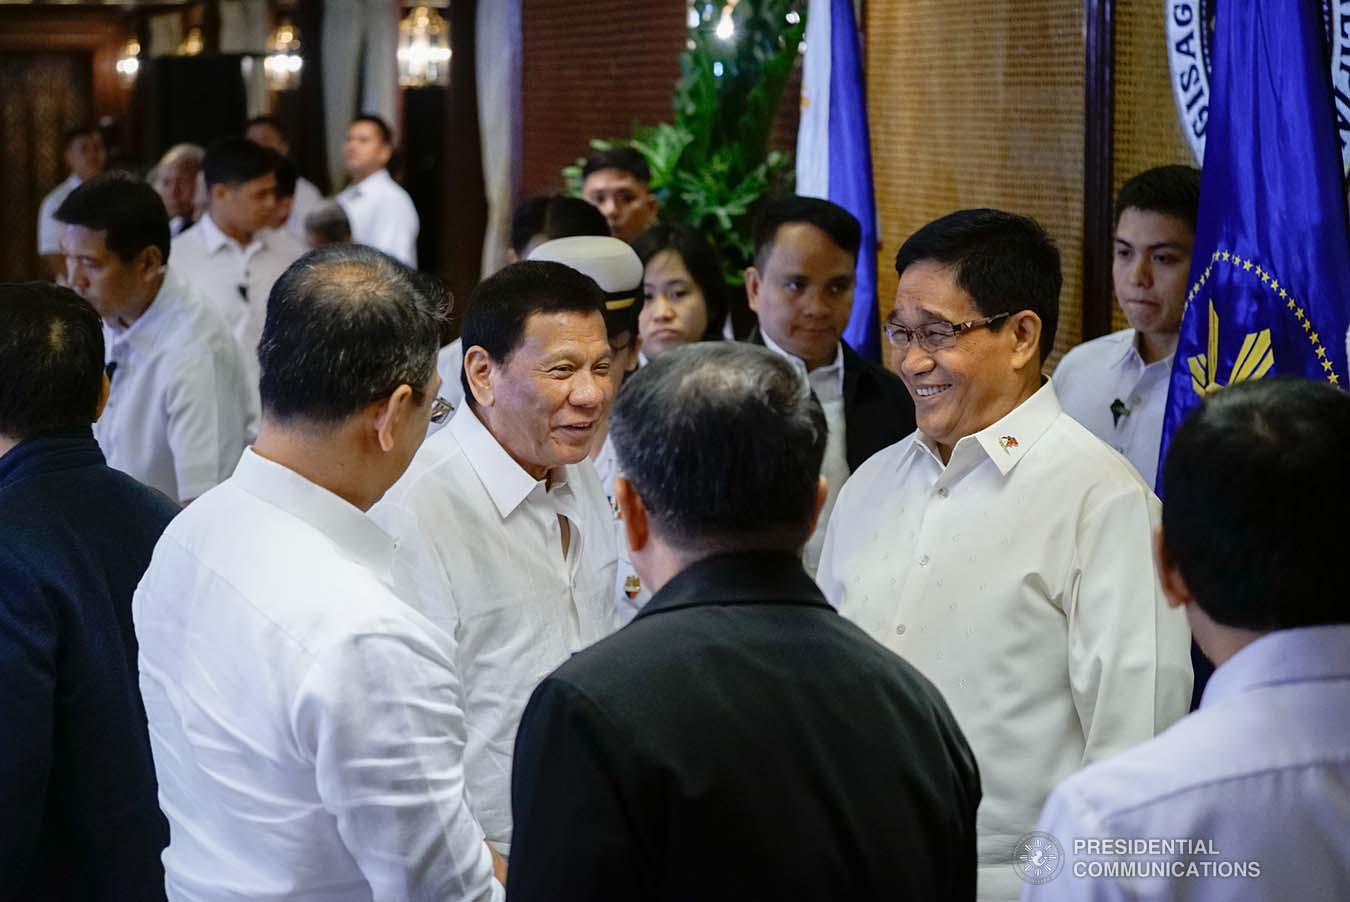 President Rodrigo Roa Duterte shares a light moment with National Security Adviser Hermogenes Esperon Jr. and some officials from the security sector during the Joint Armed Forces of the Philippines-Philippine National Police (AFP-PNP) Command Conference at the Malacañan Palace on September 5, 2019. KING RODRIGUEZ/PRESIDENTIAL PHOTO